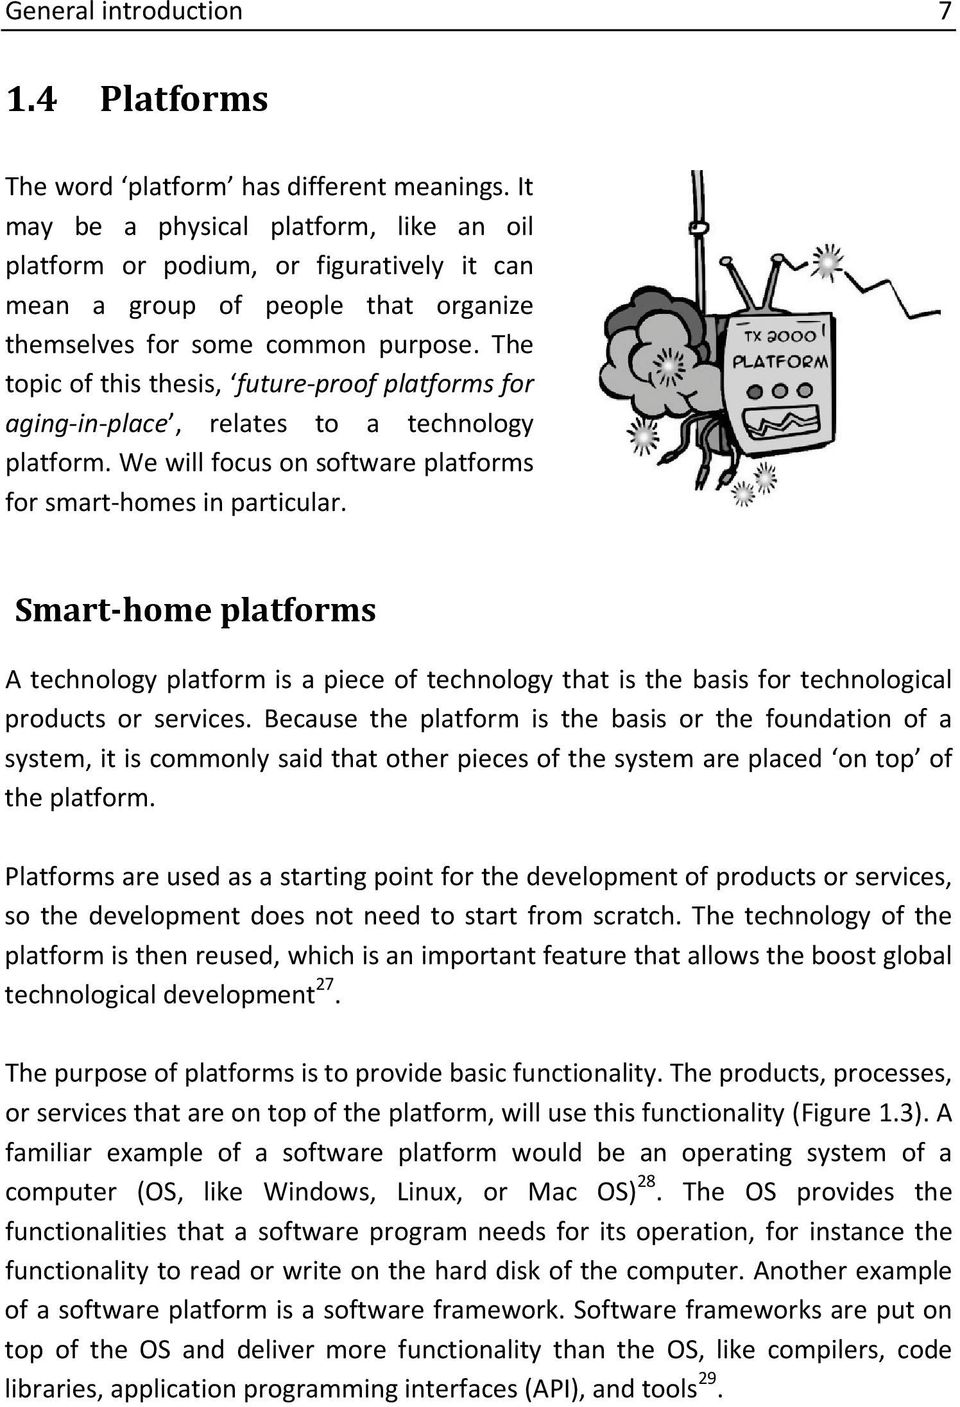 The topic of this thesis, future-proof platforms for aging-in-place, relates to a technology platform. We will focus on software platforms for smart-homes in particular.